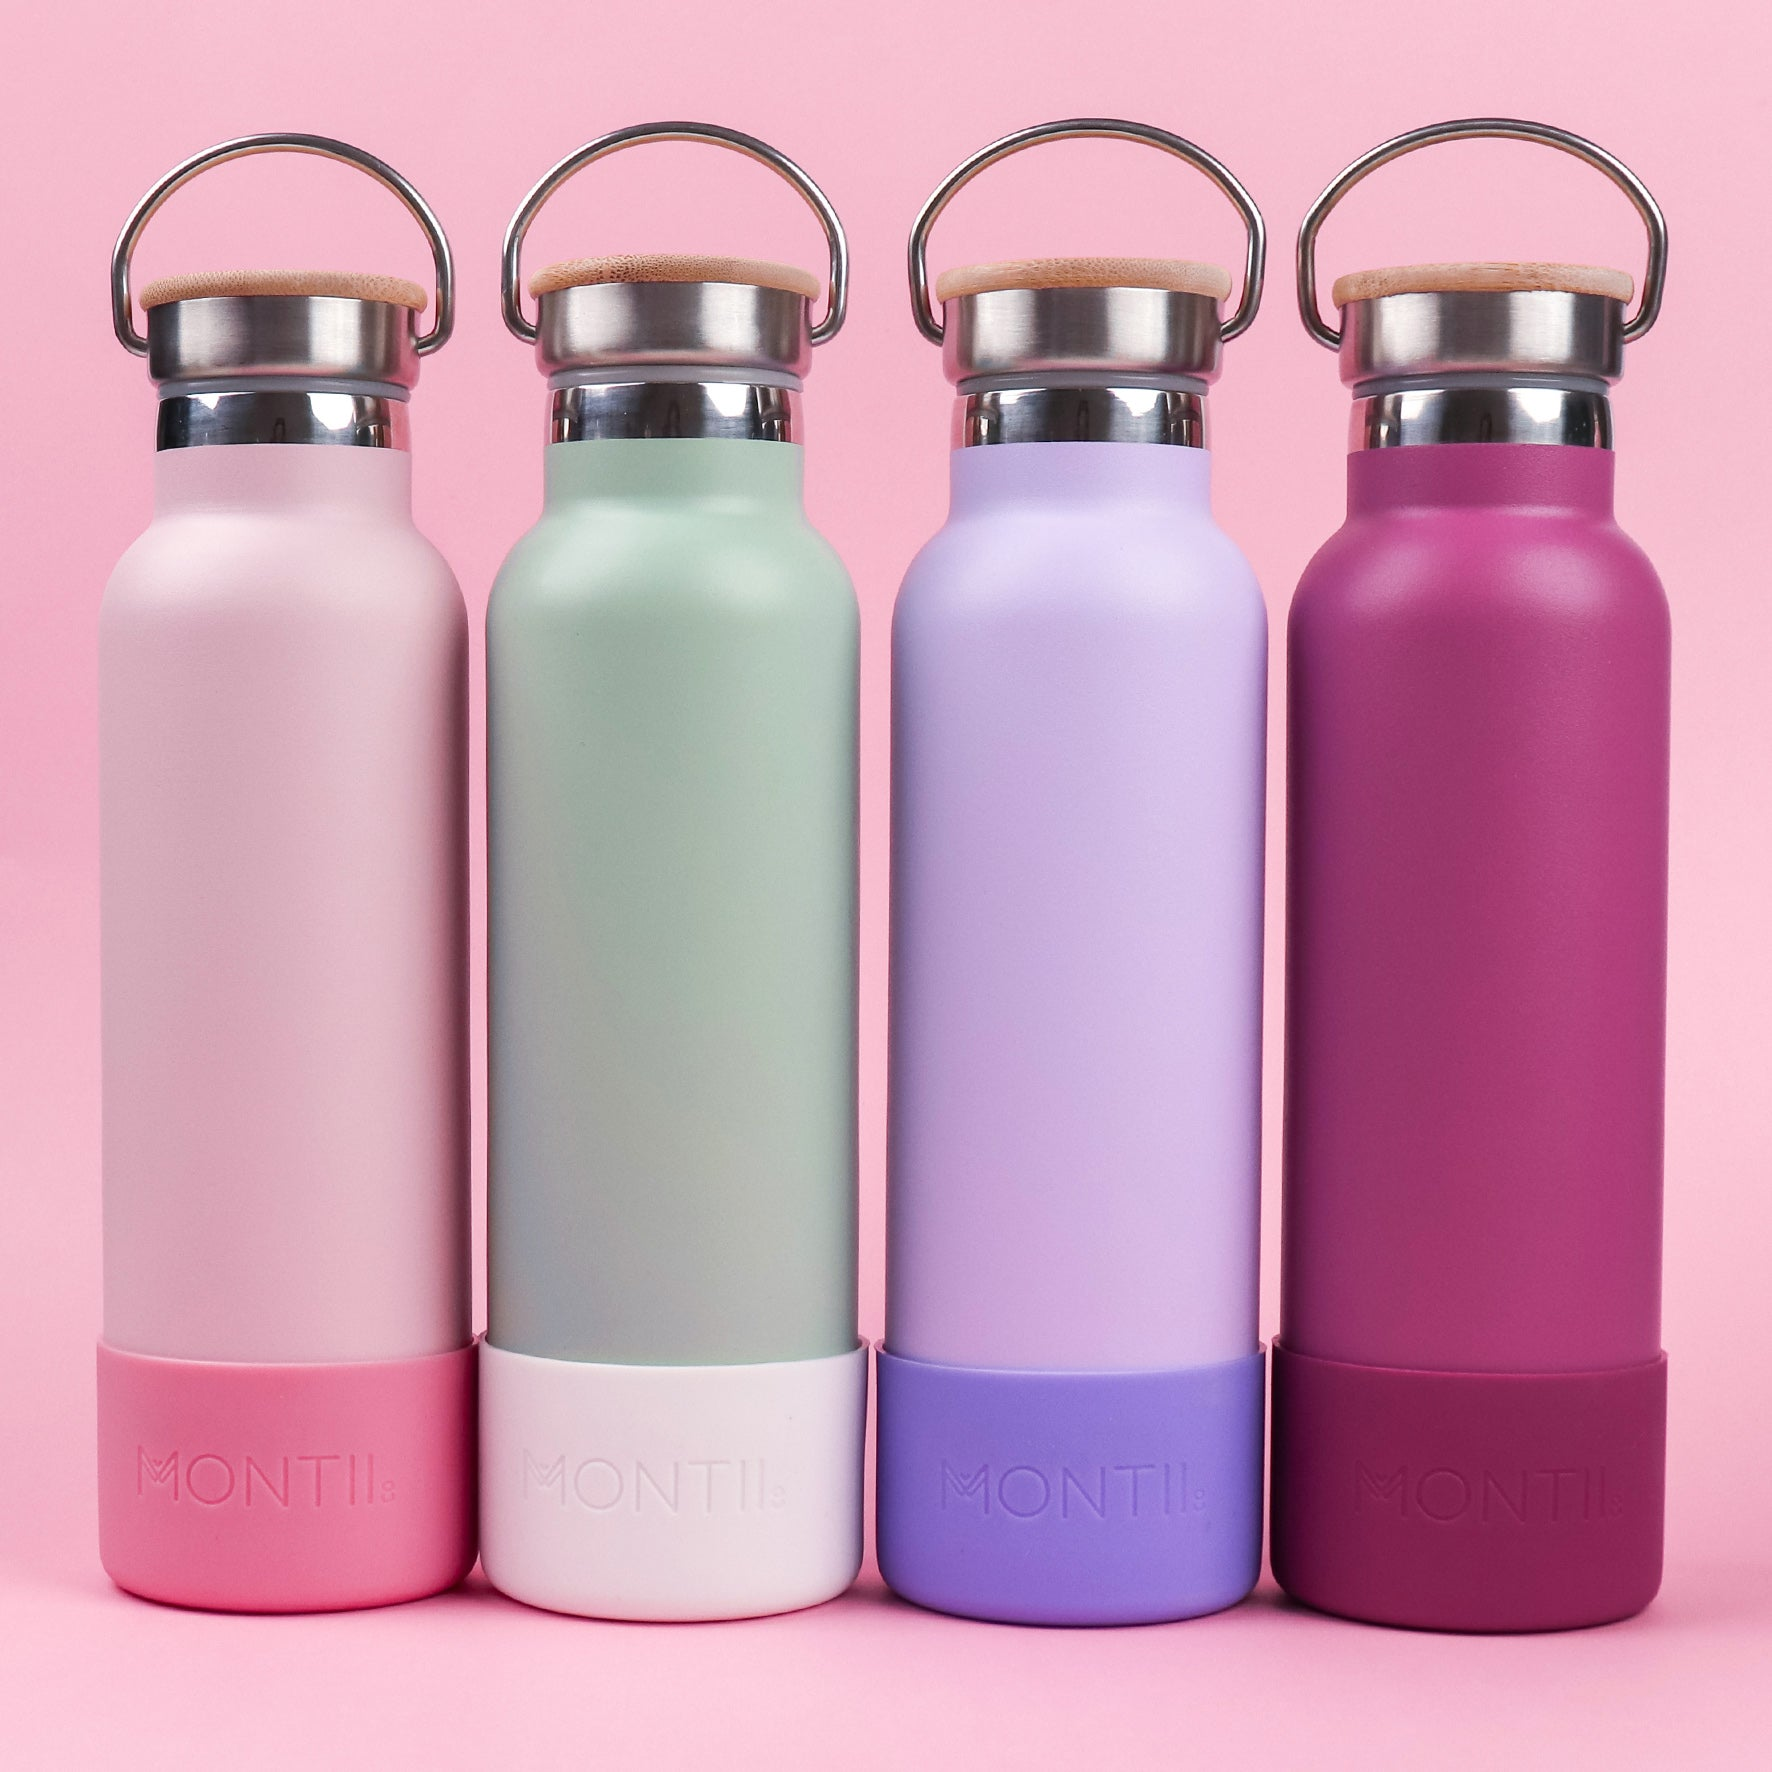 Montii Co Original Drink Bottle - Lavendar